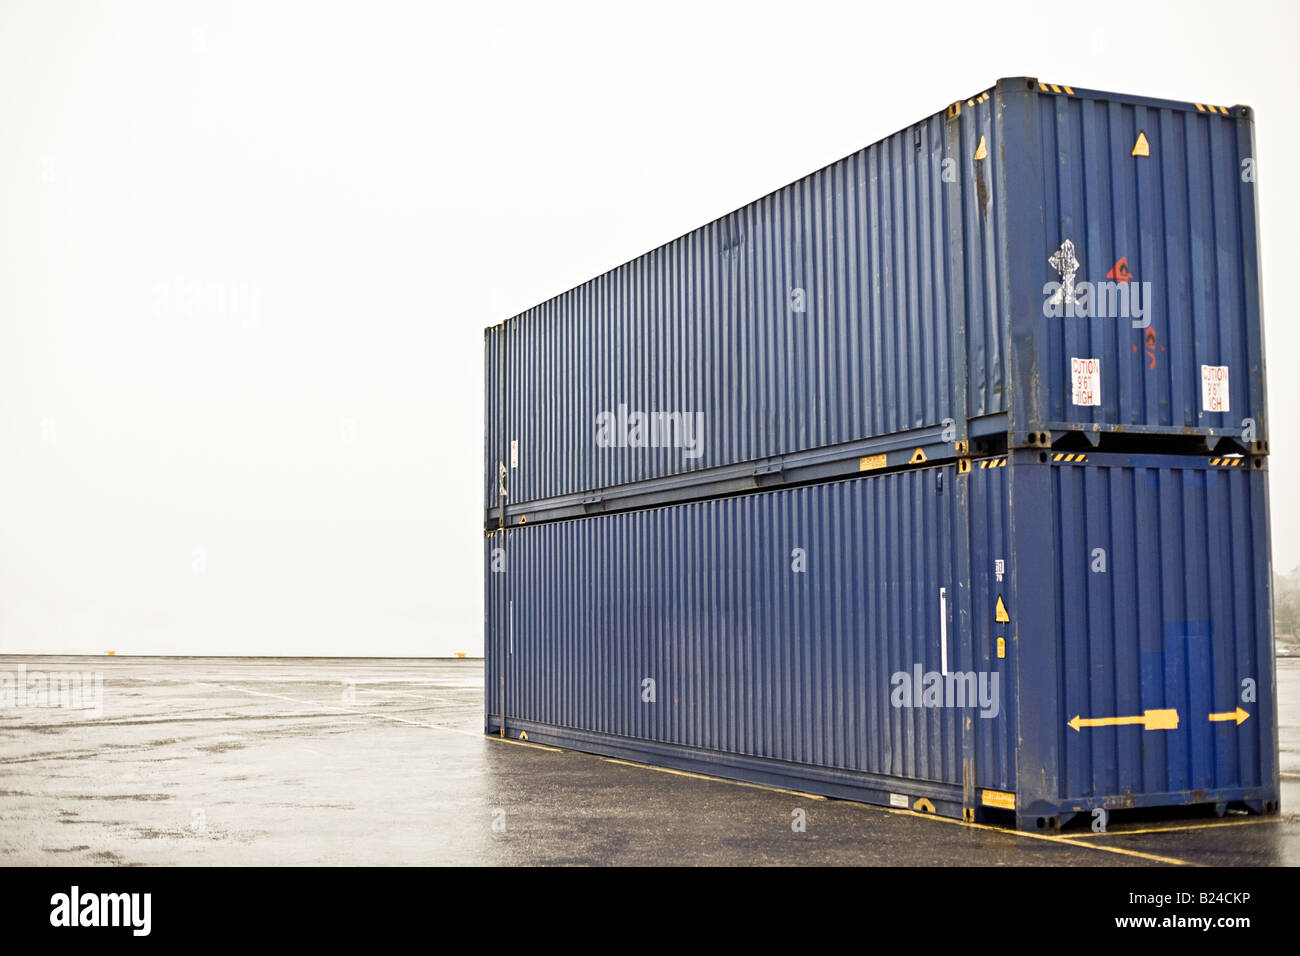 Two cargo containers - Stock Image